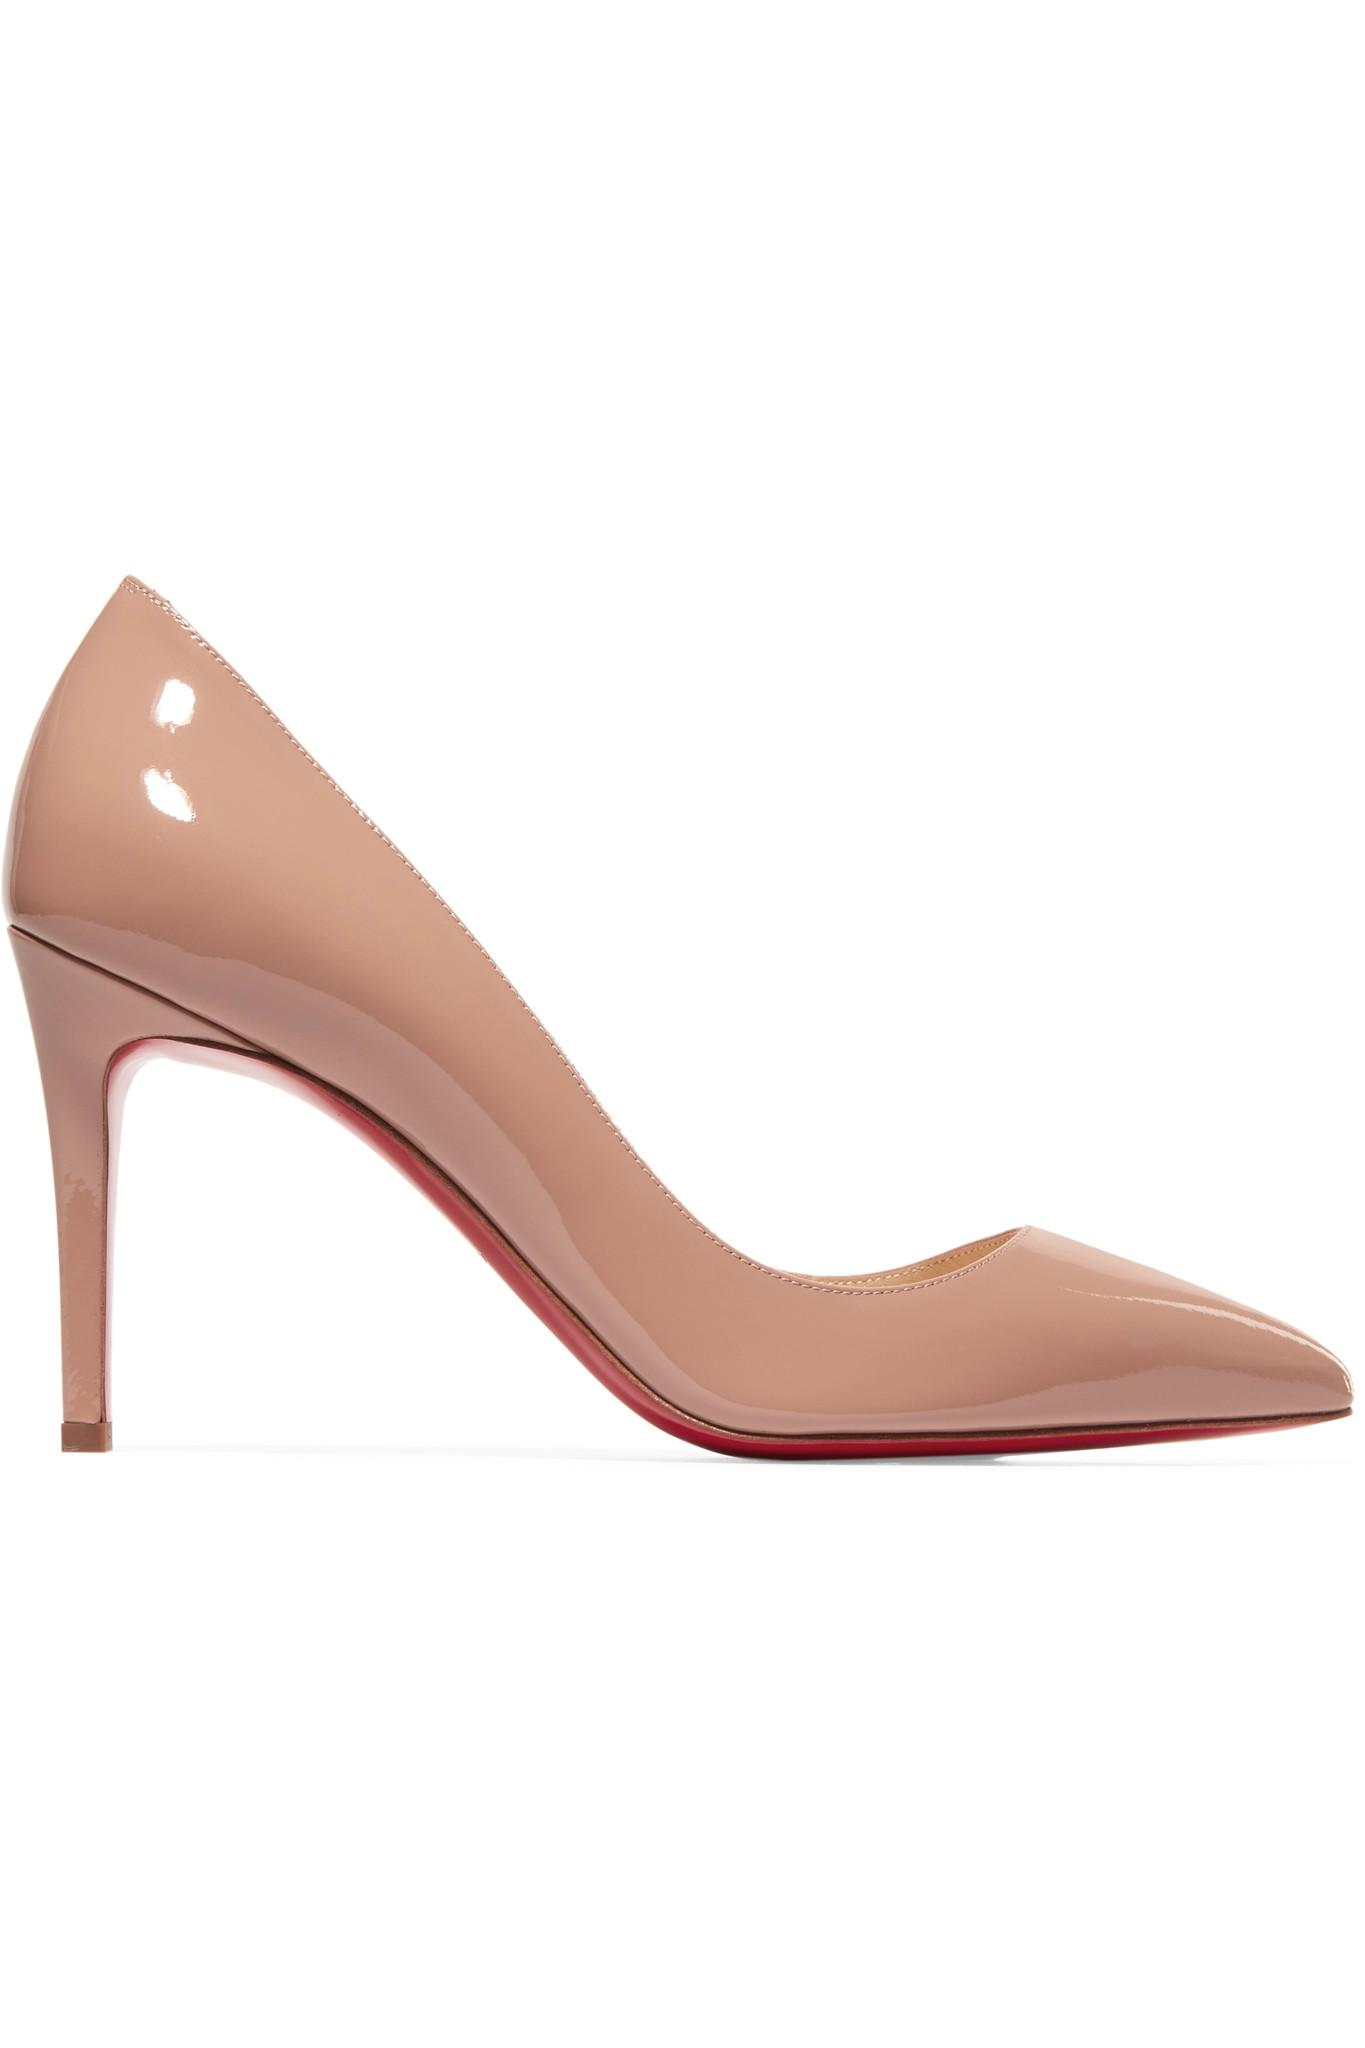 206a7591a448 Christian Louboutin. Women s Natural Pigalle 85 Patent-leather Court Shoes